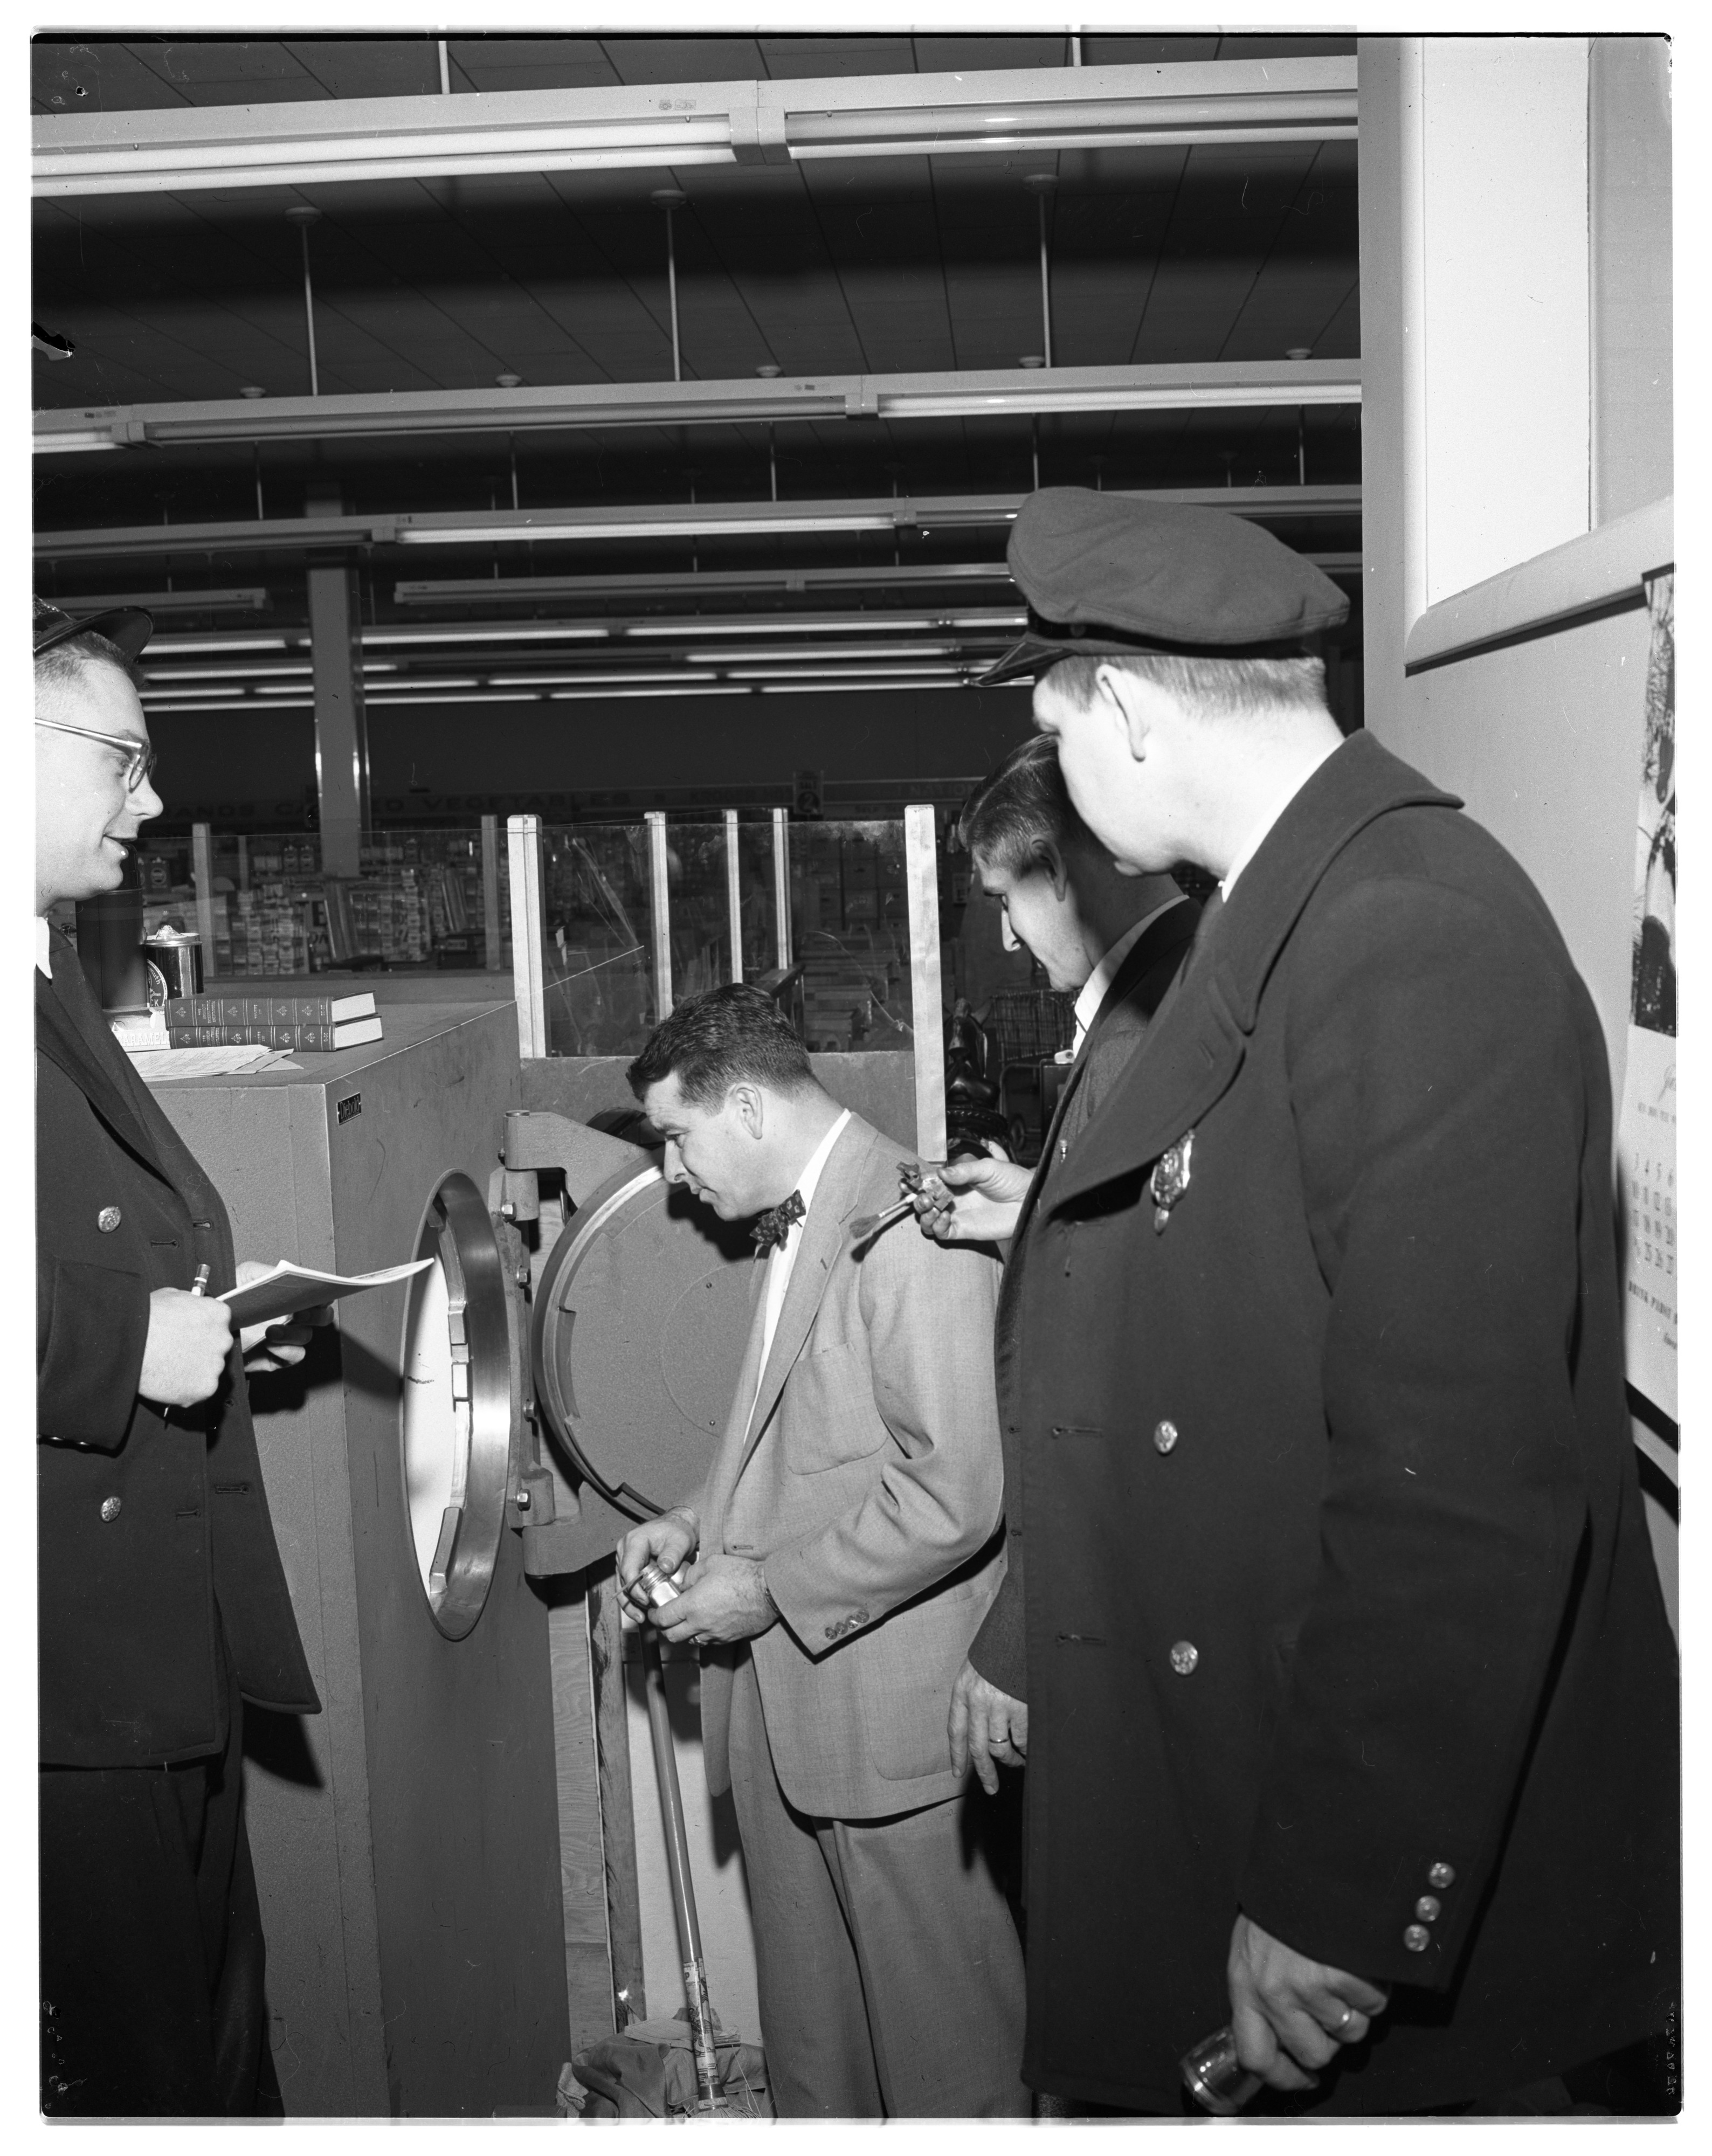 Safe Looted of $4,500 at Stadium Blvd. Kroger Supermarket, February 1954 image